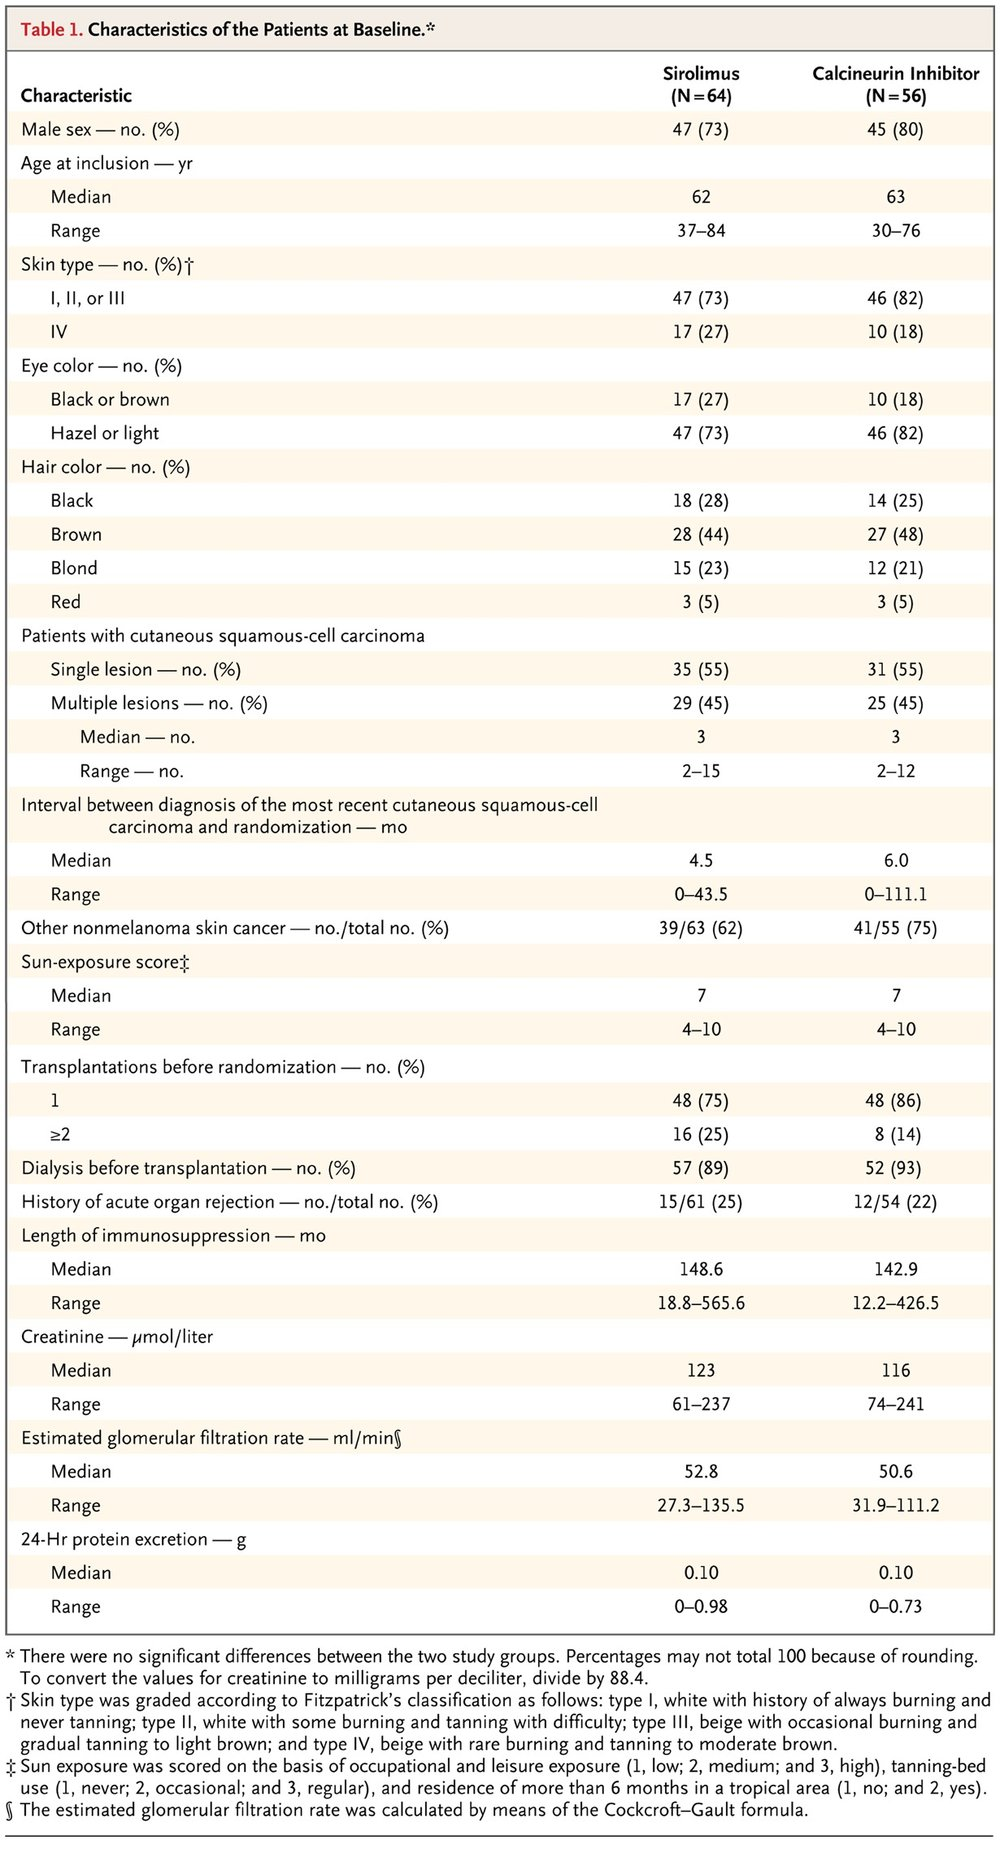 Table 1 from    Euvrard et al, NEJM 2012